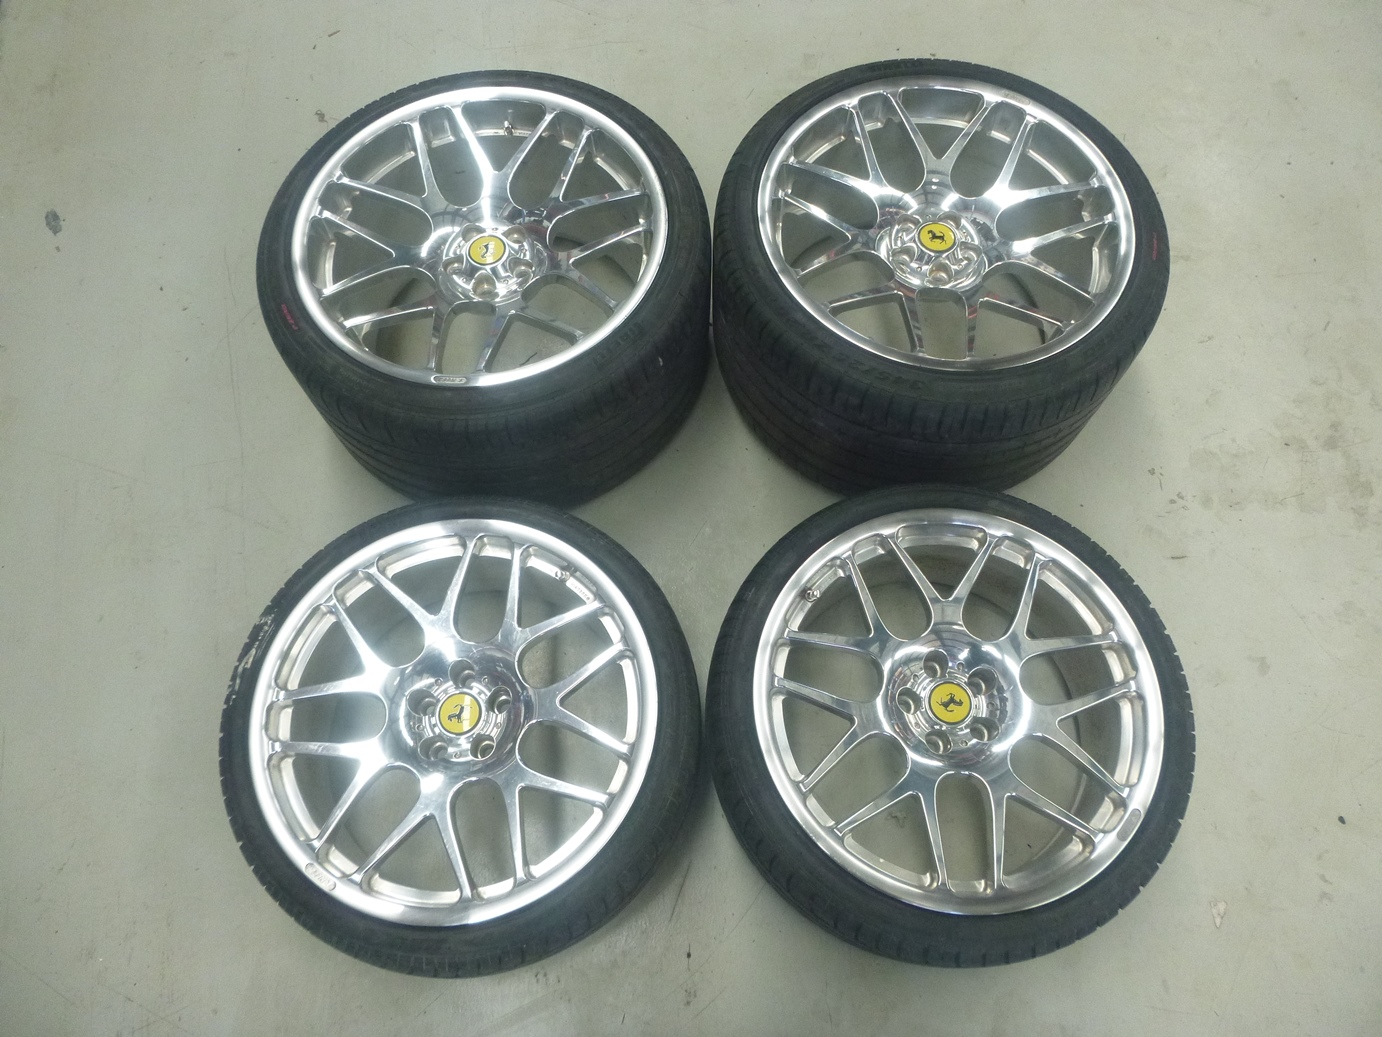 Ferrari-360-430-NEEZ-Forged-Alloy-Wheels-Rims-20-034-x-12-5-034-19-034-x-8-5-034-J051